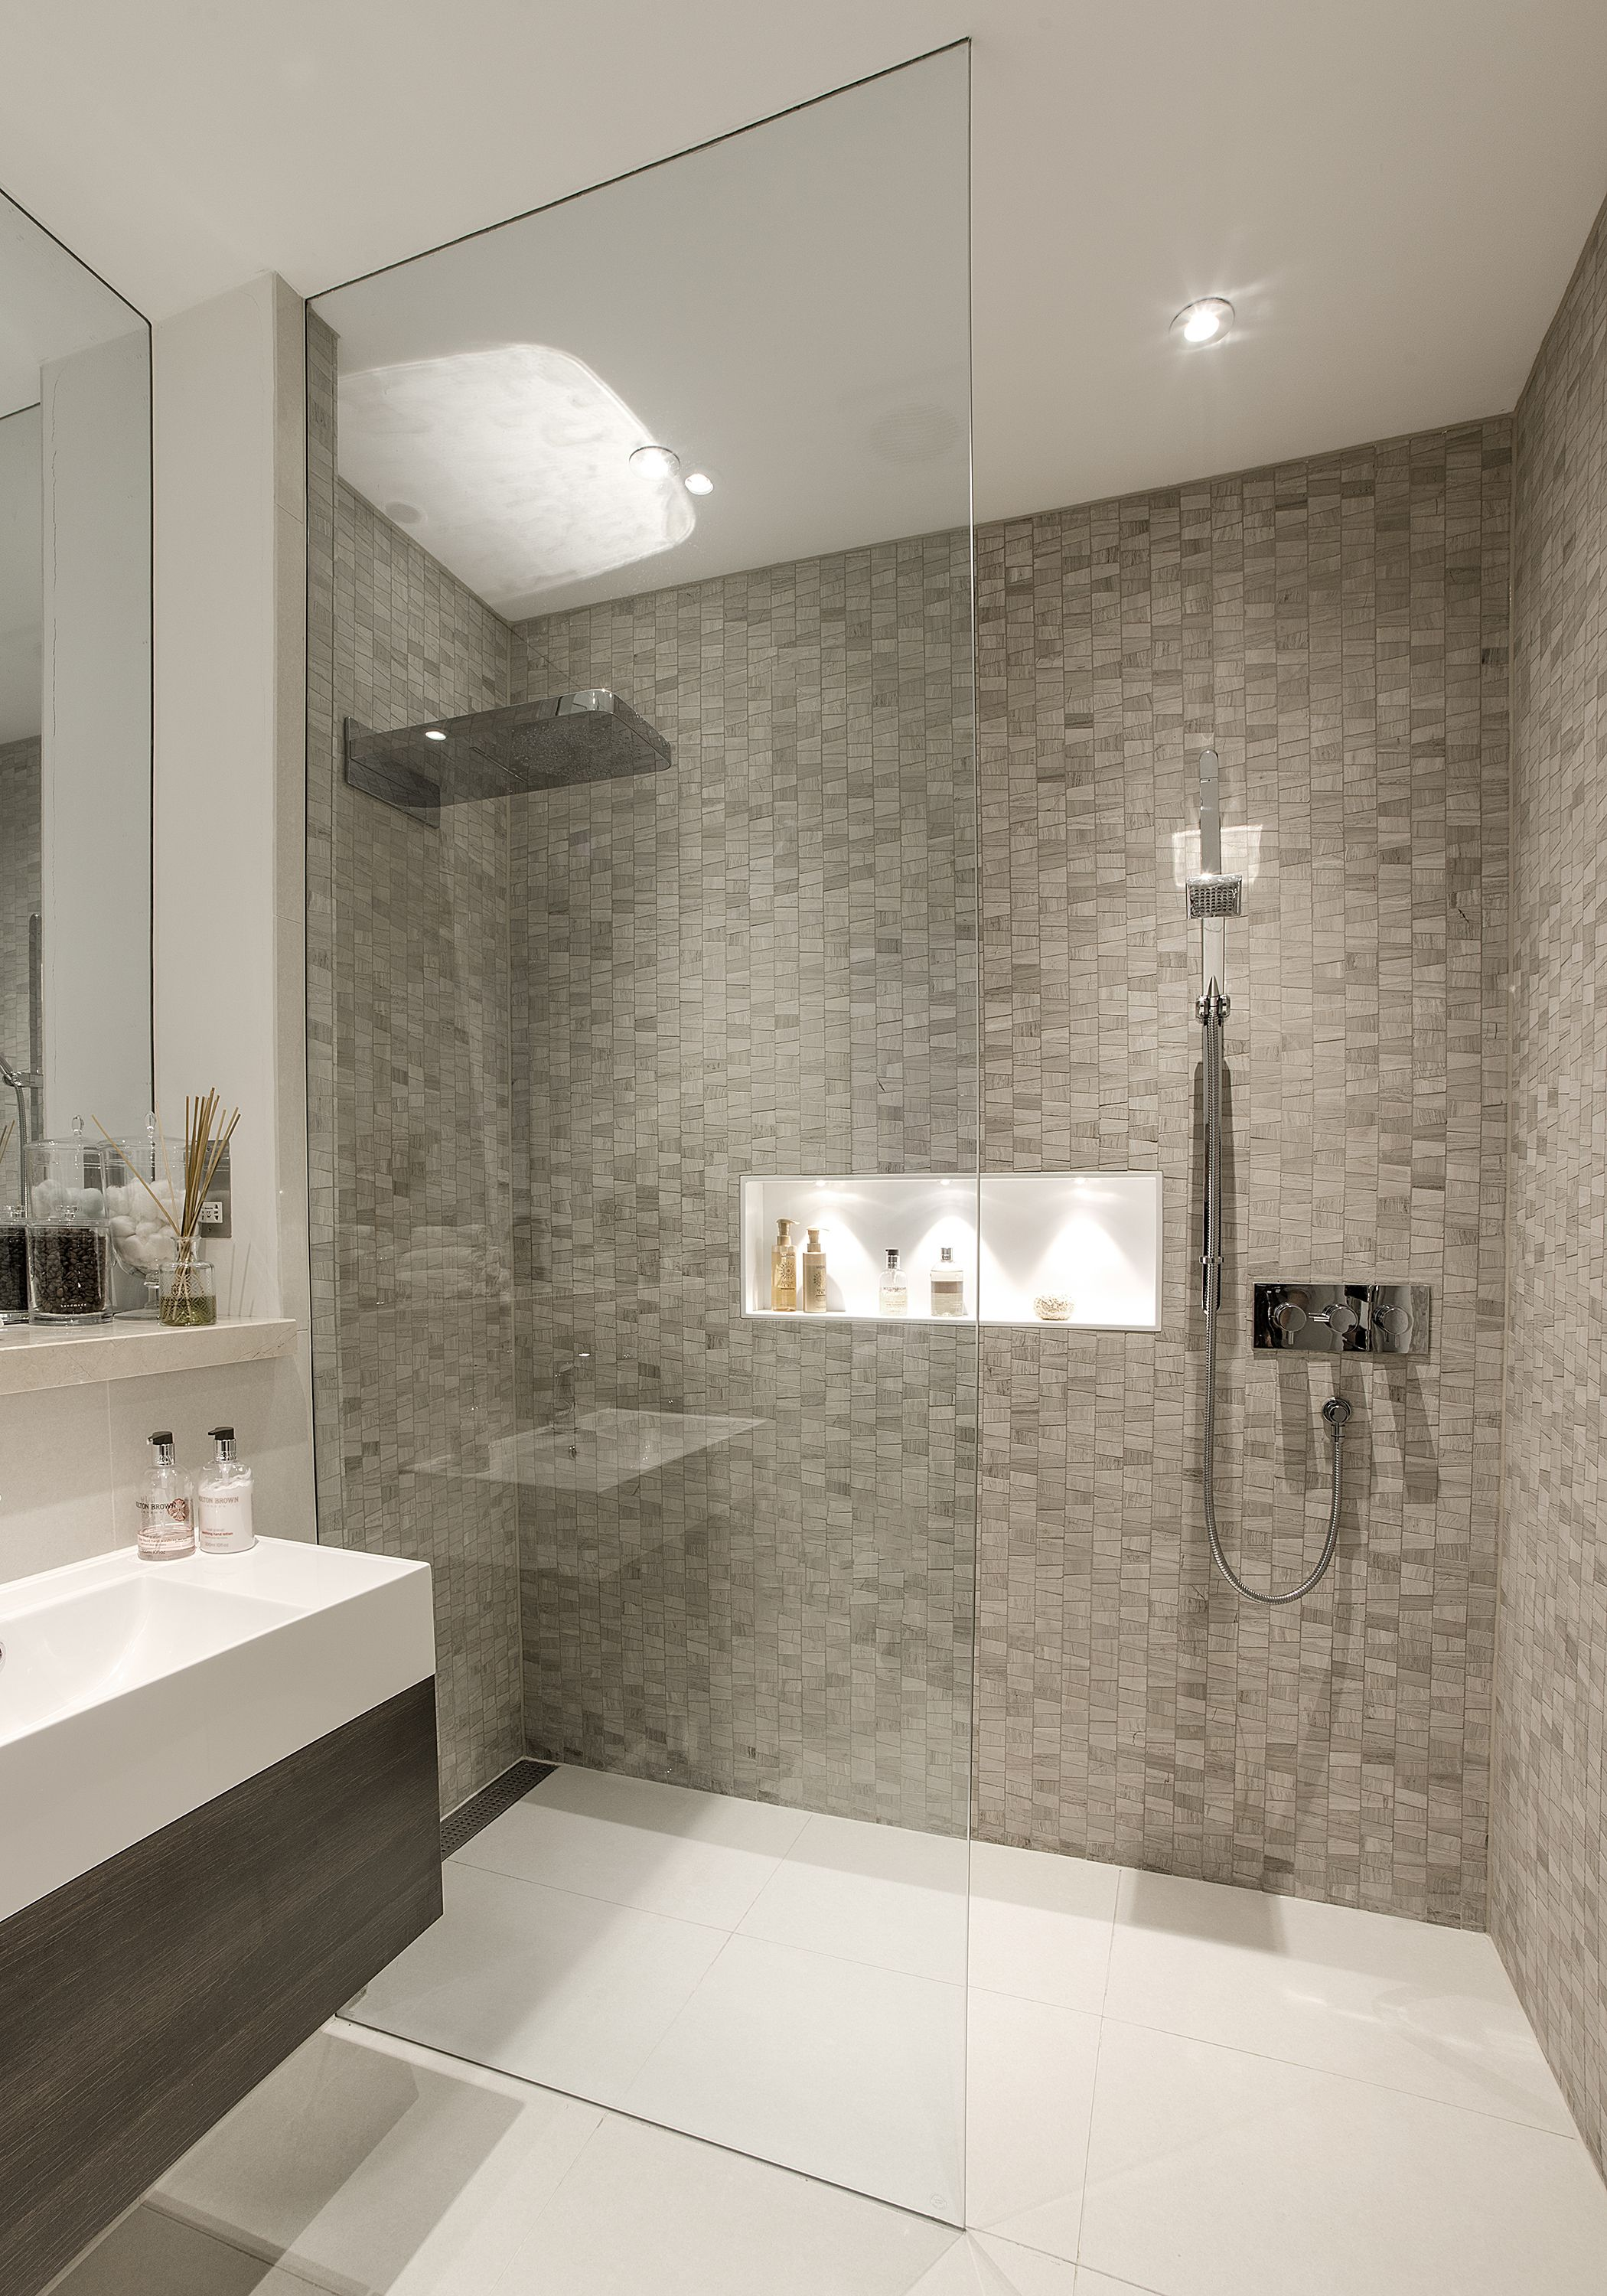 Contemporary bathrooms If shower sprays towards opening